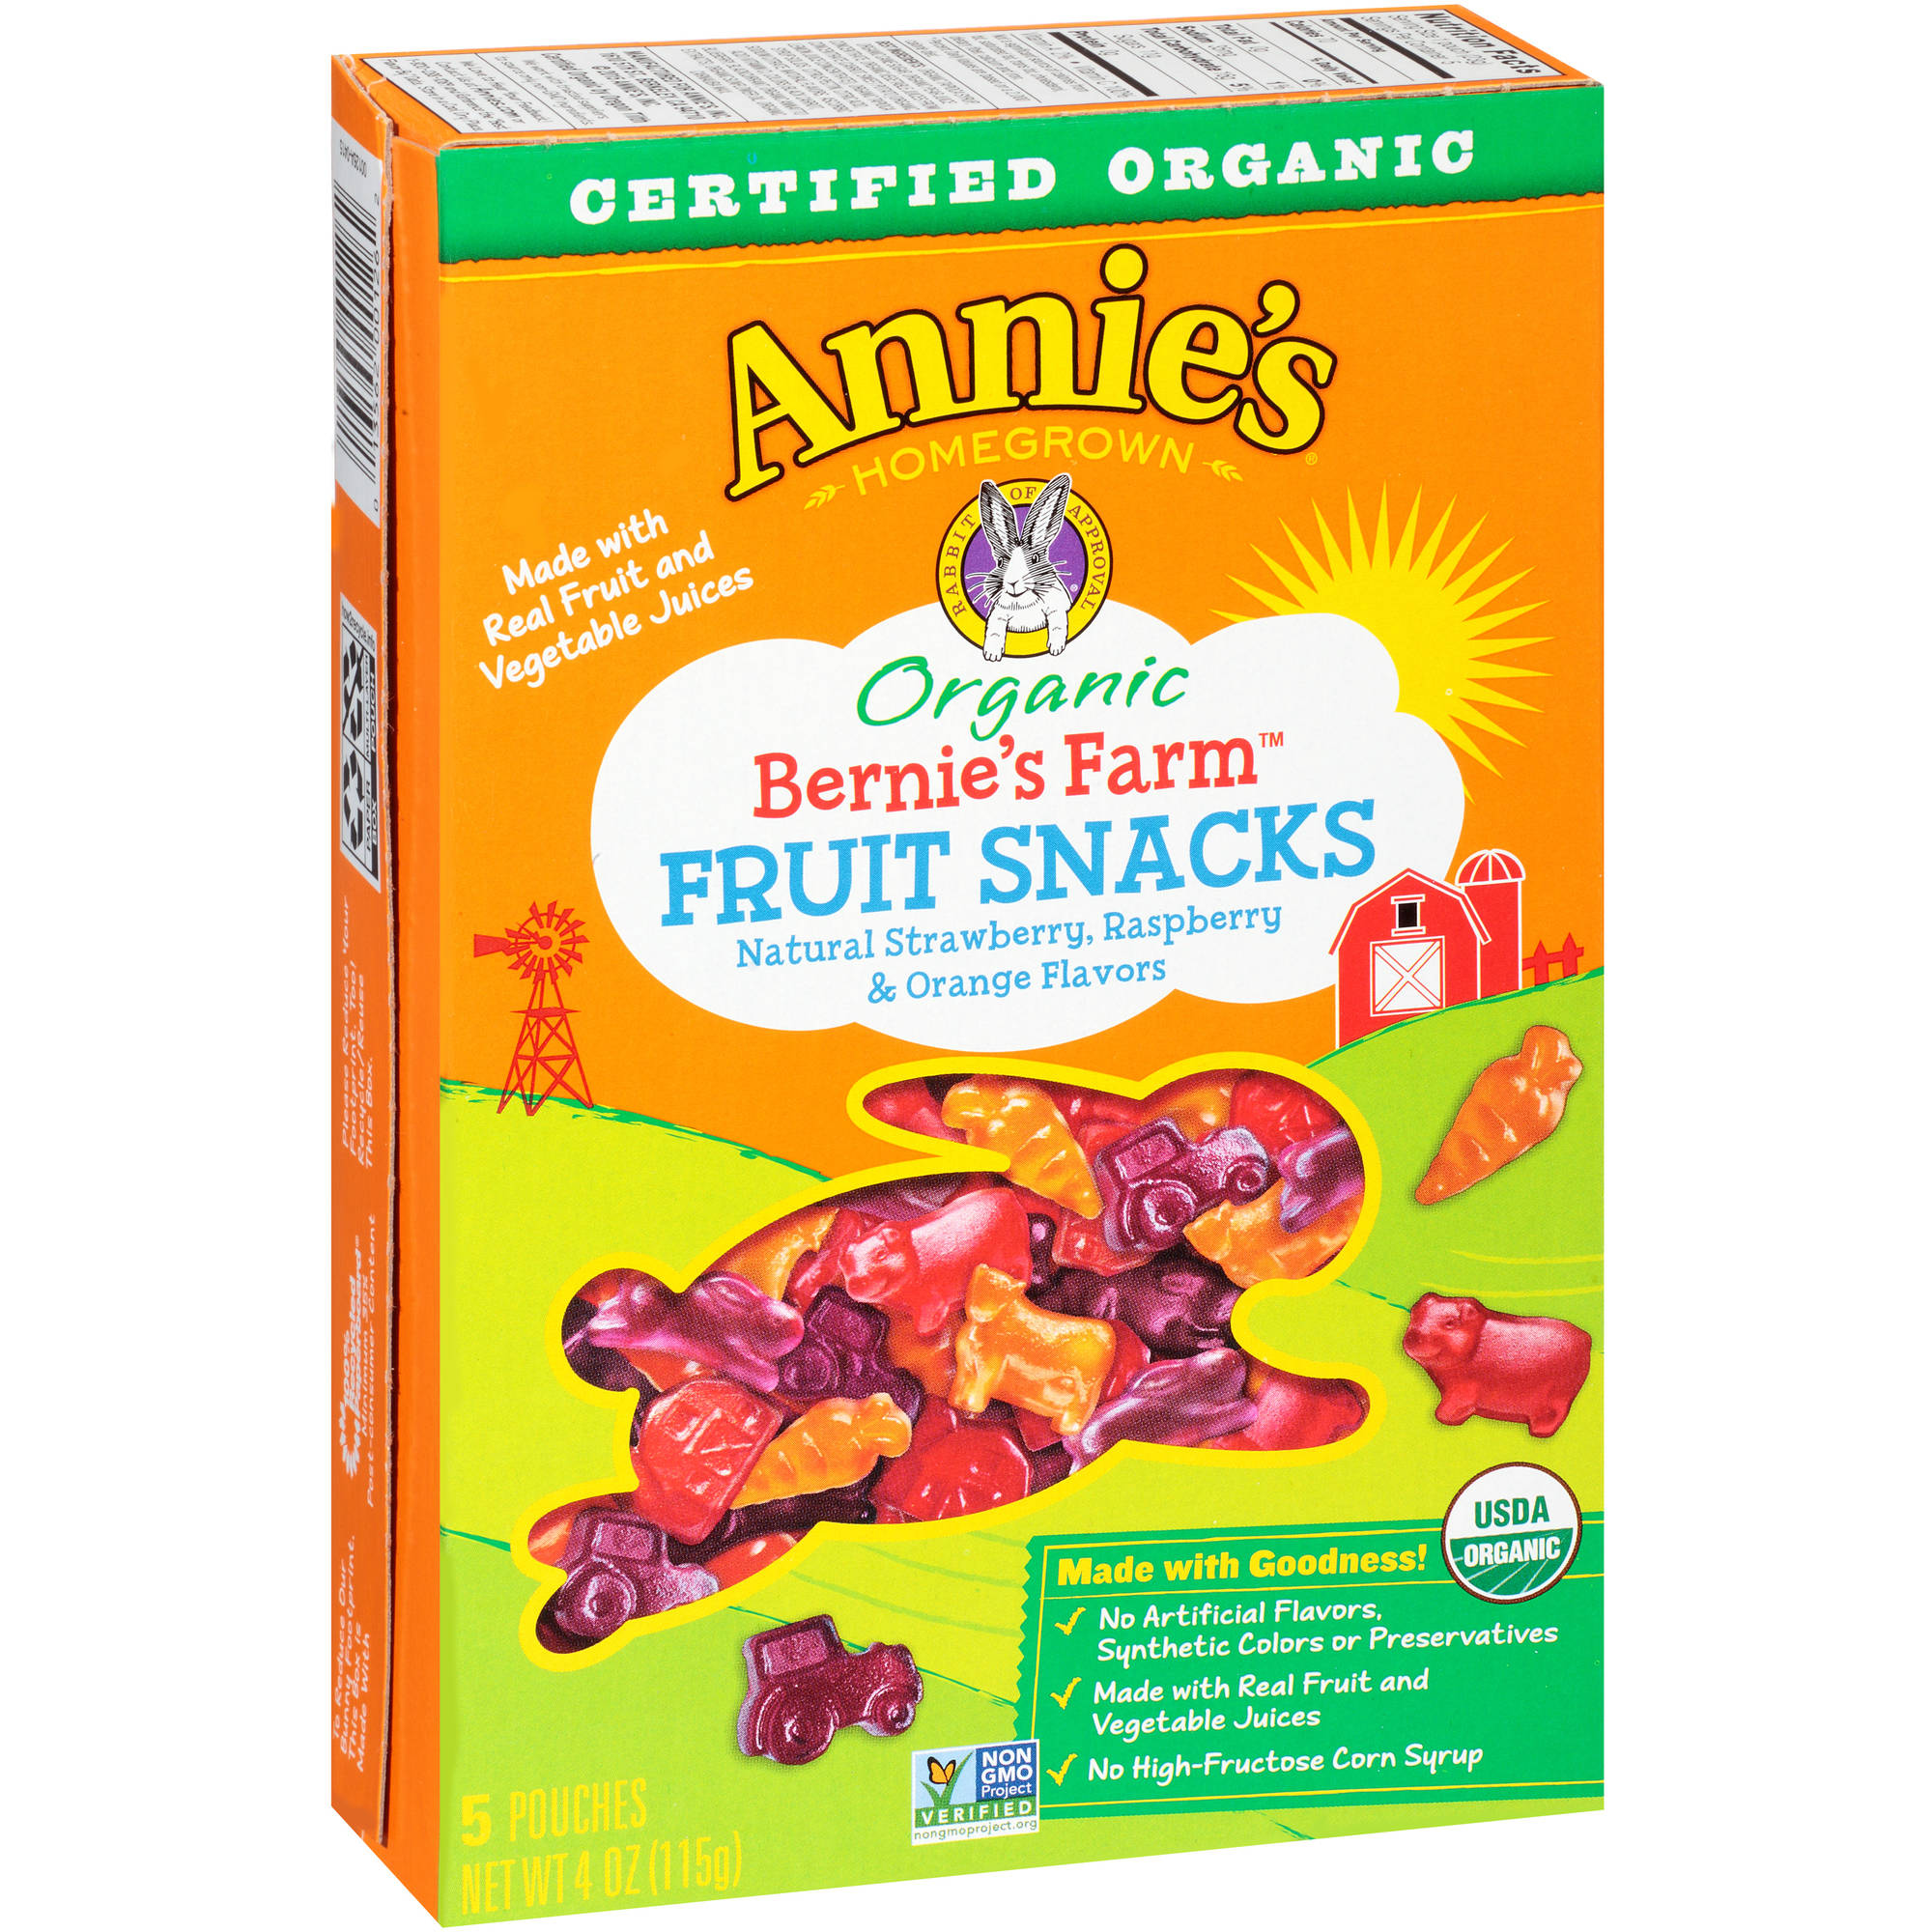 Annie's Homegrown Bernie's Farm Organic Fruit Snacks, 5 count, 4 oz